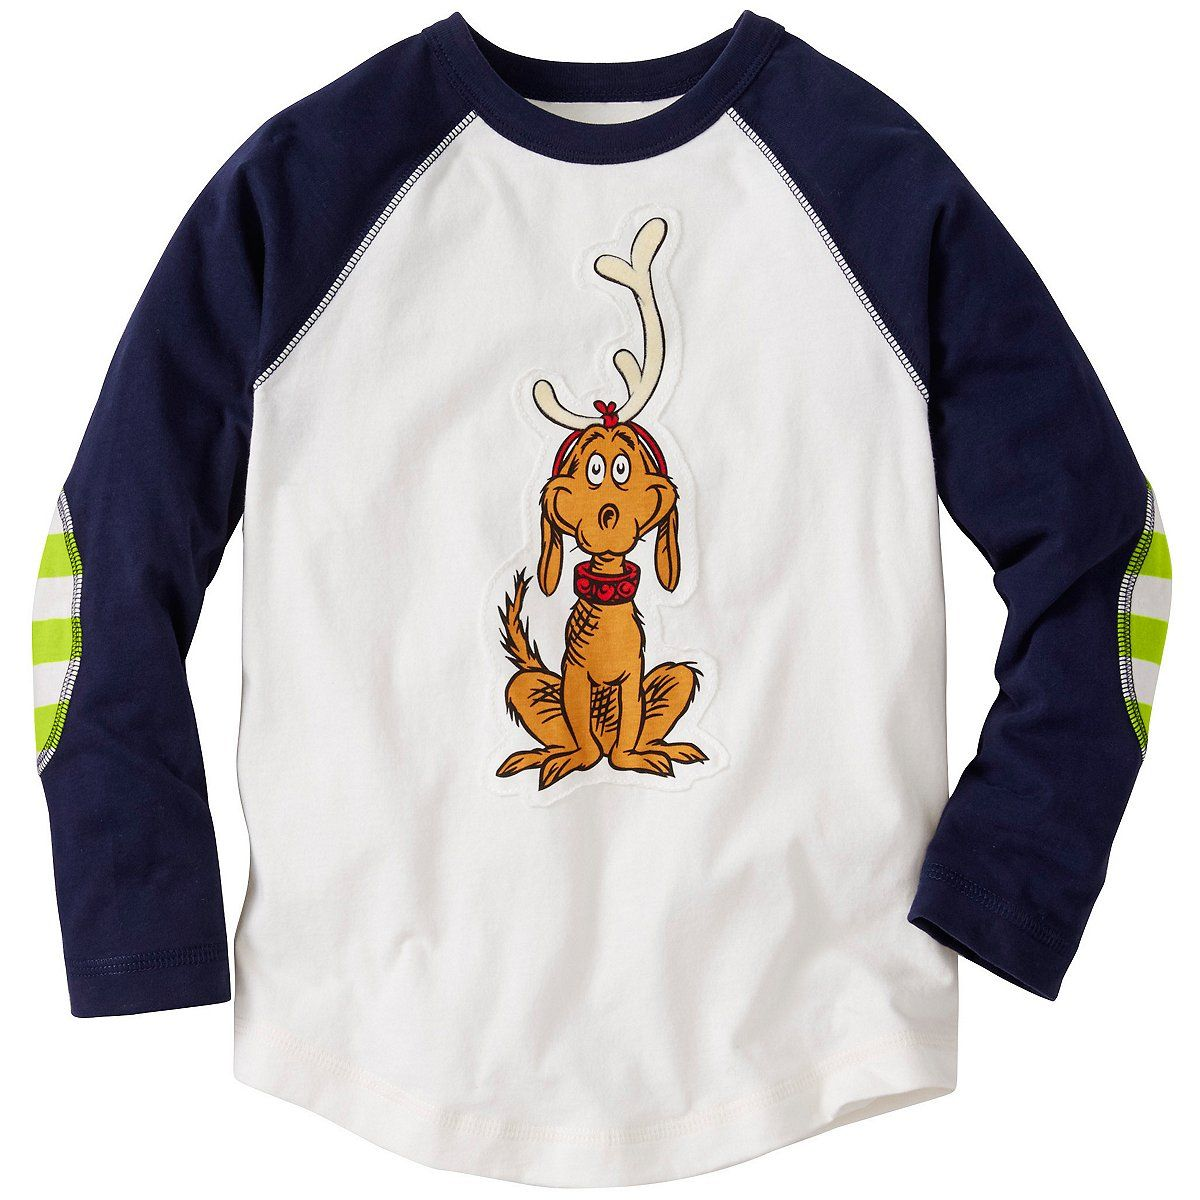 Dr. Seuss Grinch Appliqué Tee by Hanna Andersson   Shirts   Pinterest